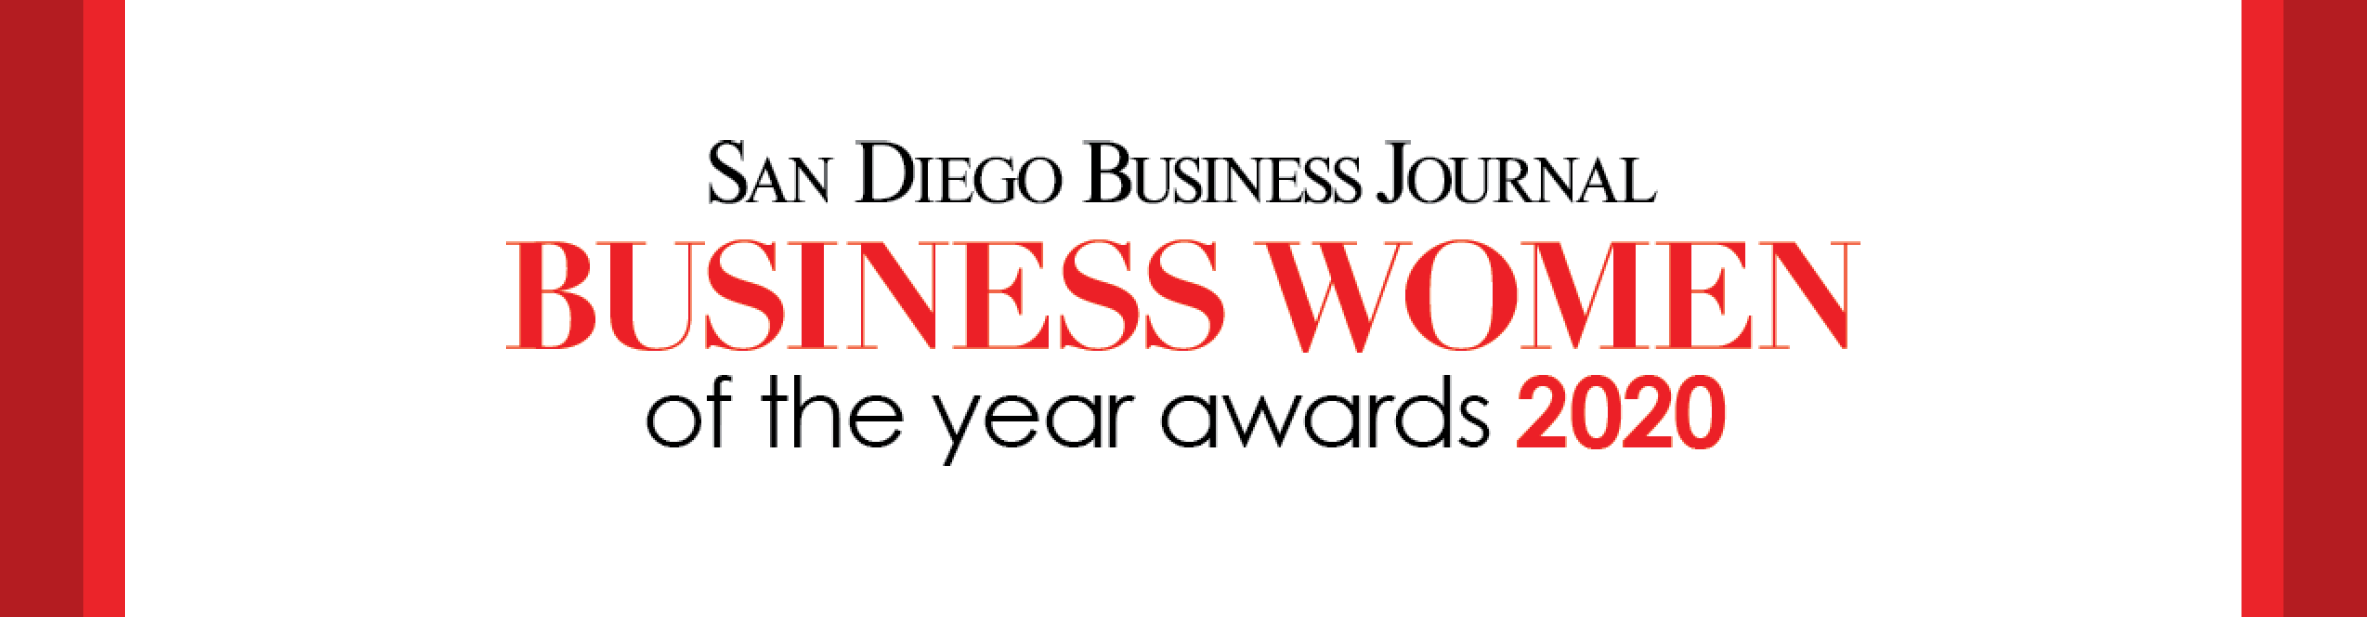 San Diego Business Journal Business Women of the Year